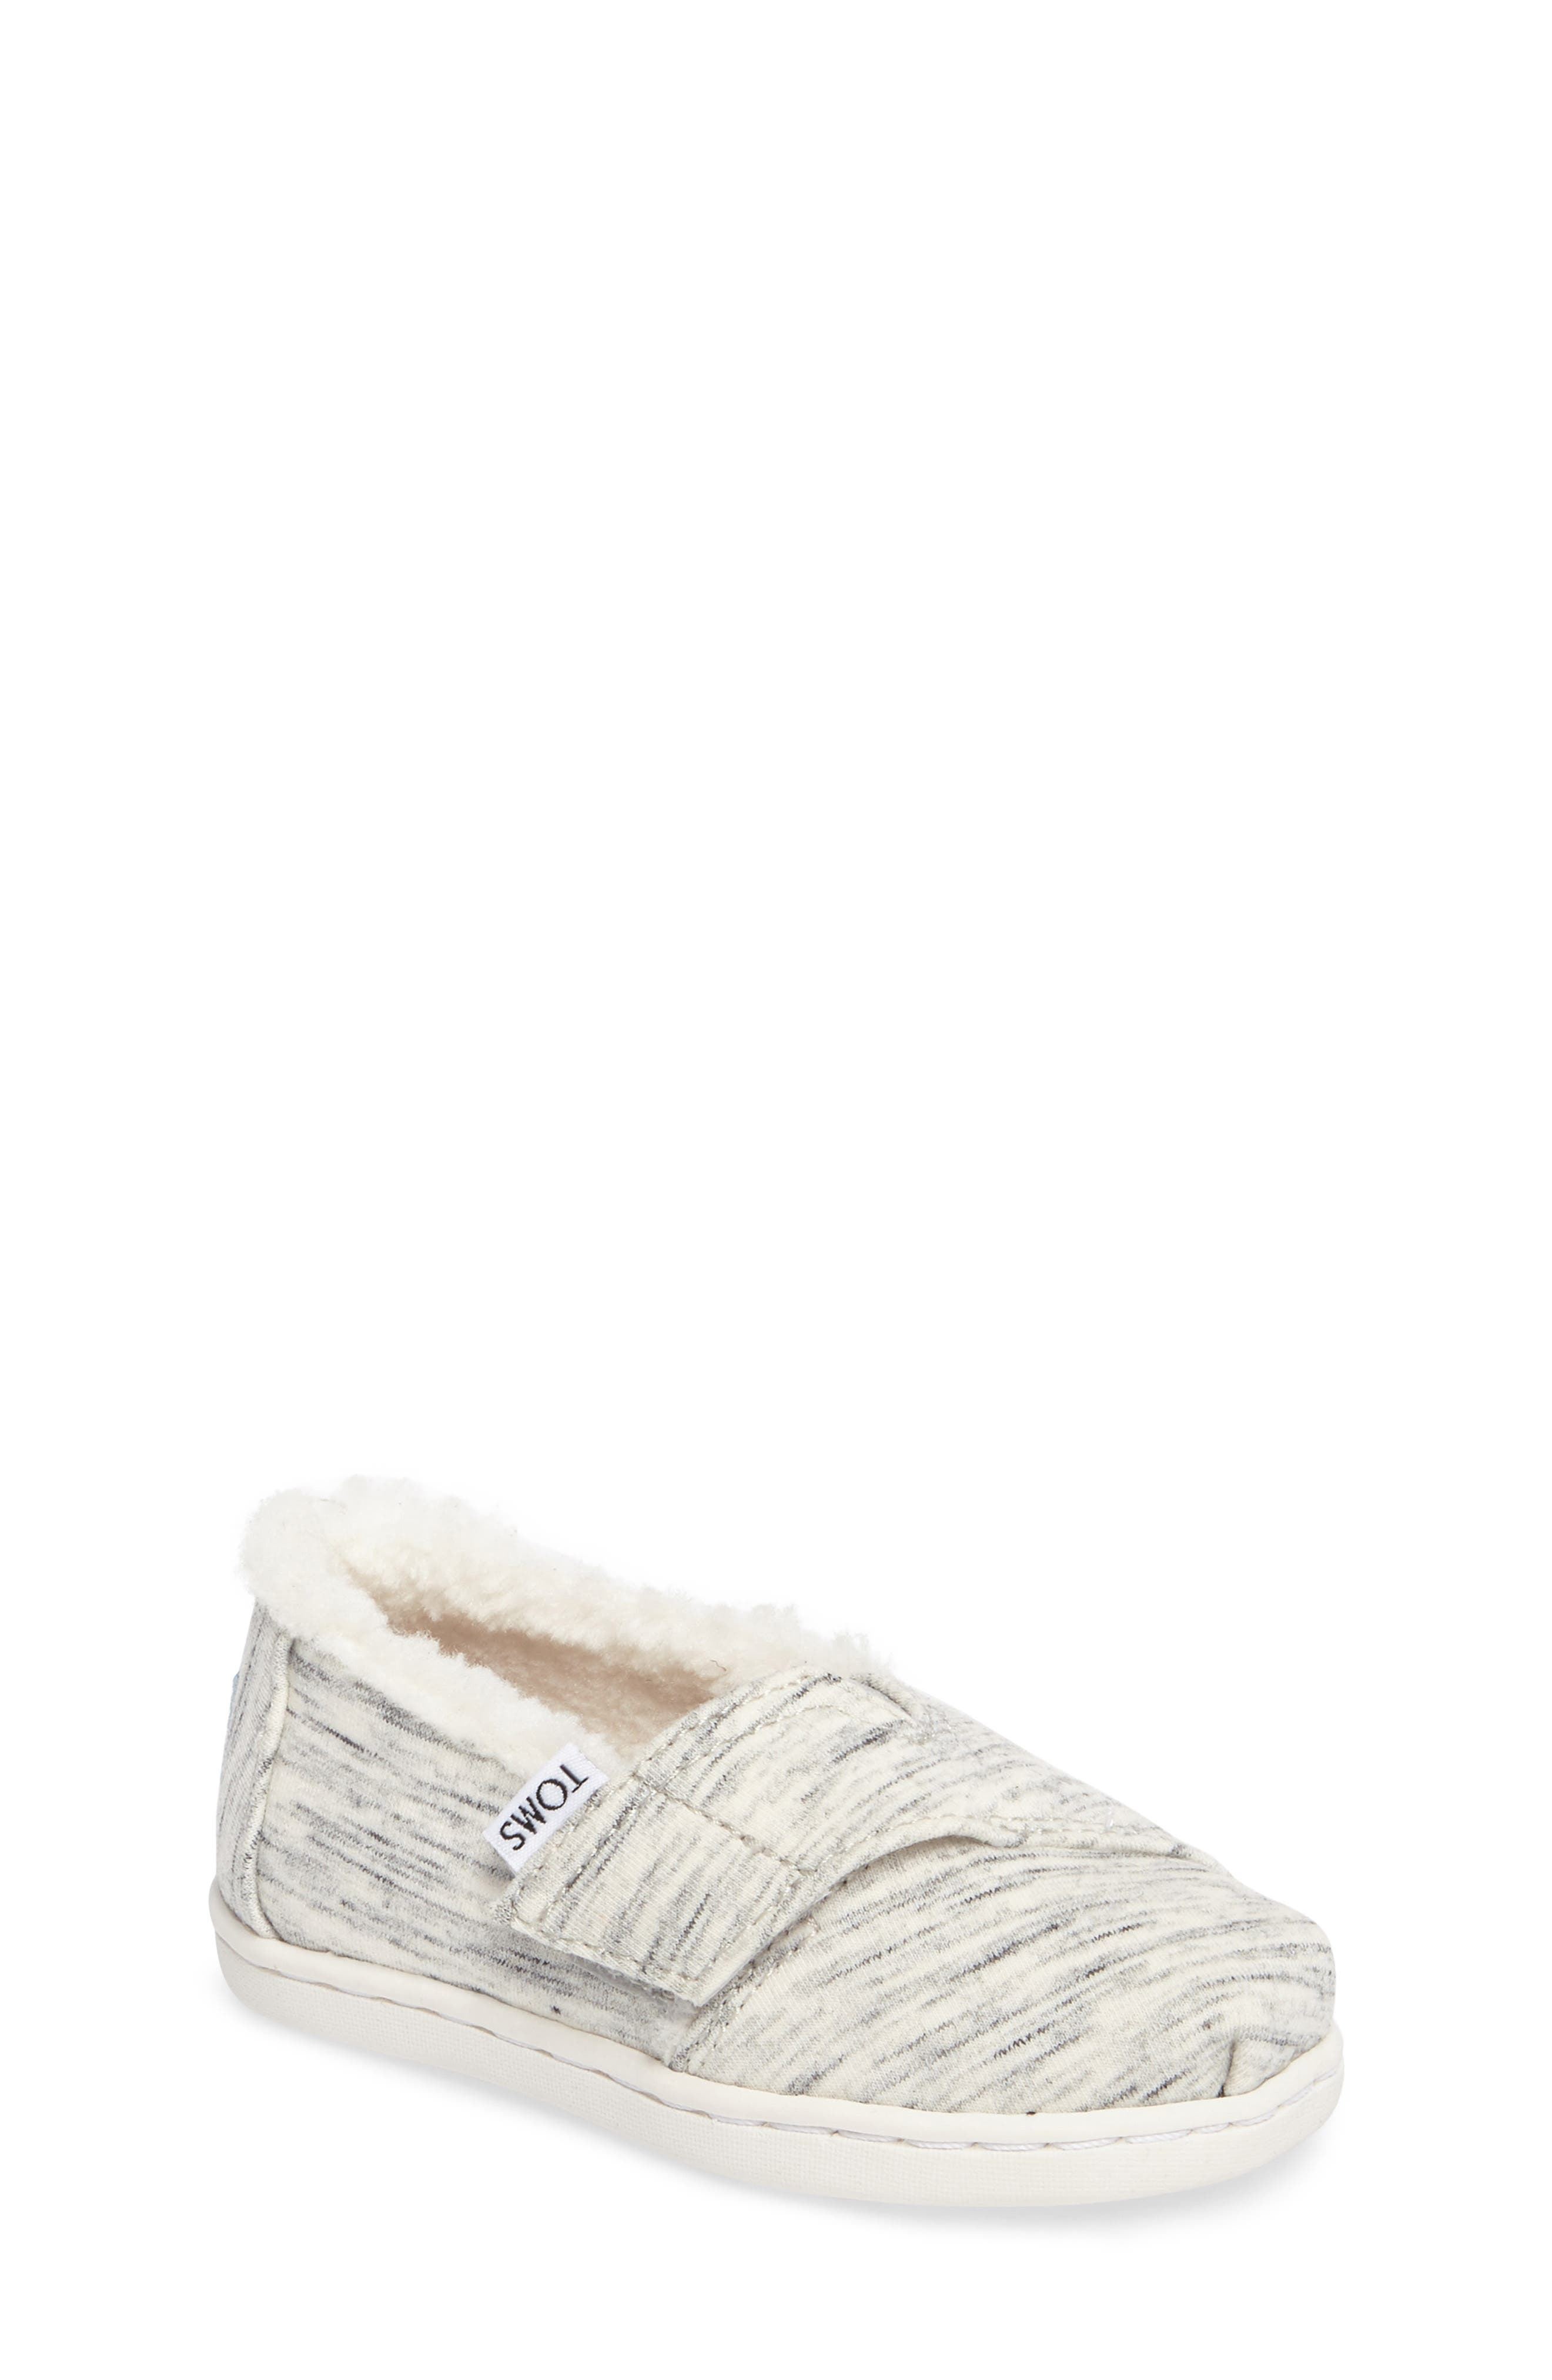 Classic - Tiny Herringbone Faux Shearling Lined Slip-On,                         Main,                         color, Birch Jersey/ Faux Shearling